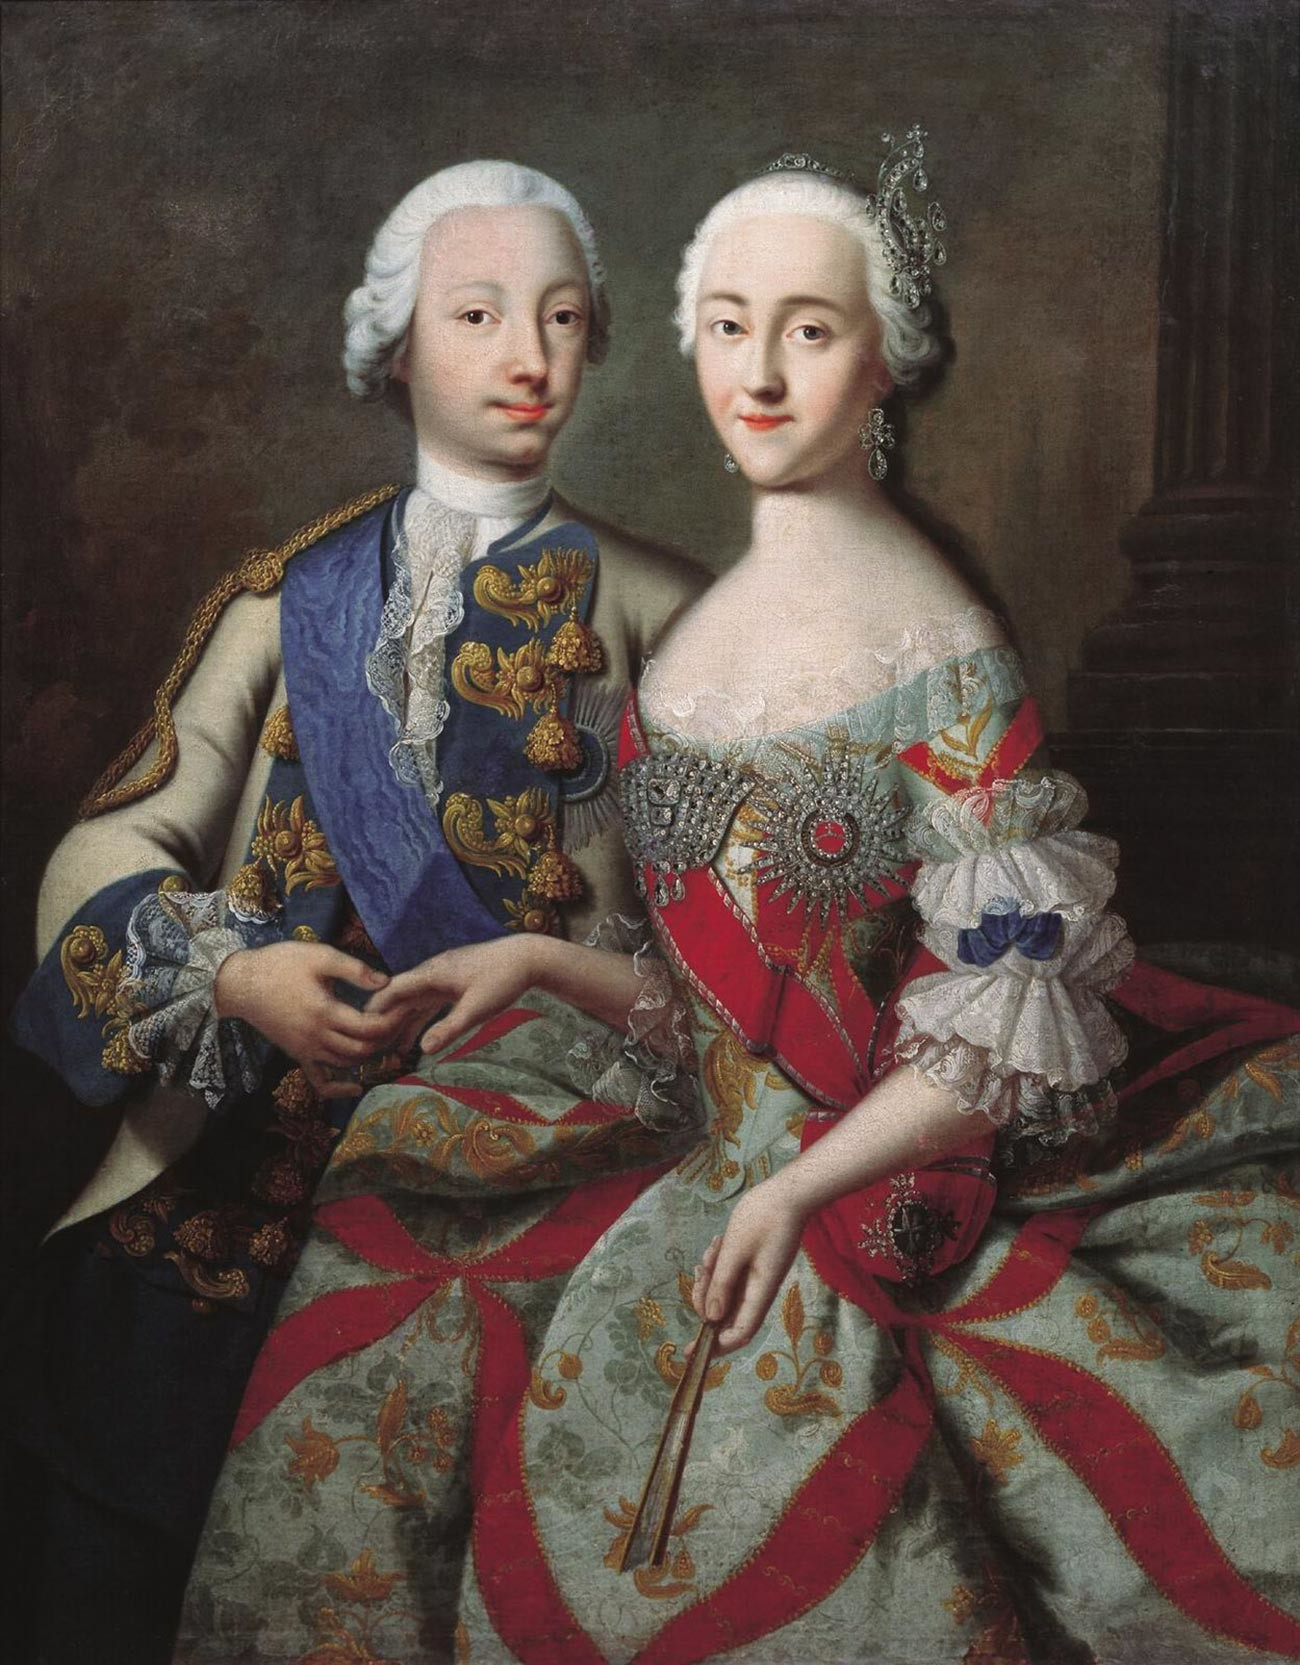 Peter and Catherine as Grand Dukes, before Peter became the Russian Emperor